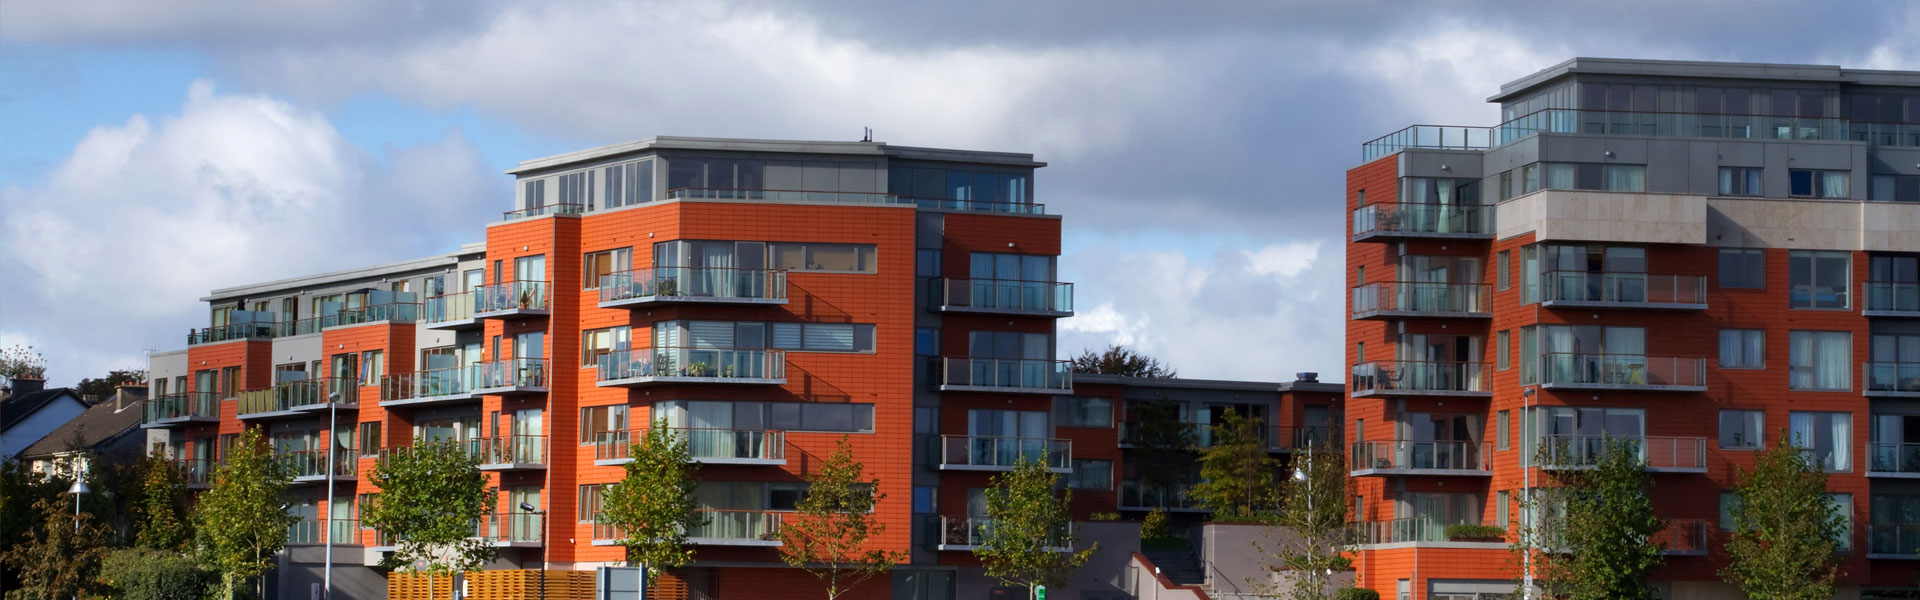 Real estate agent in Ballymun experts